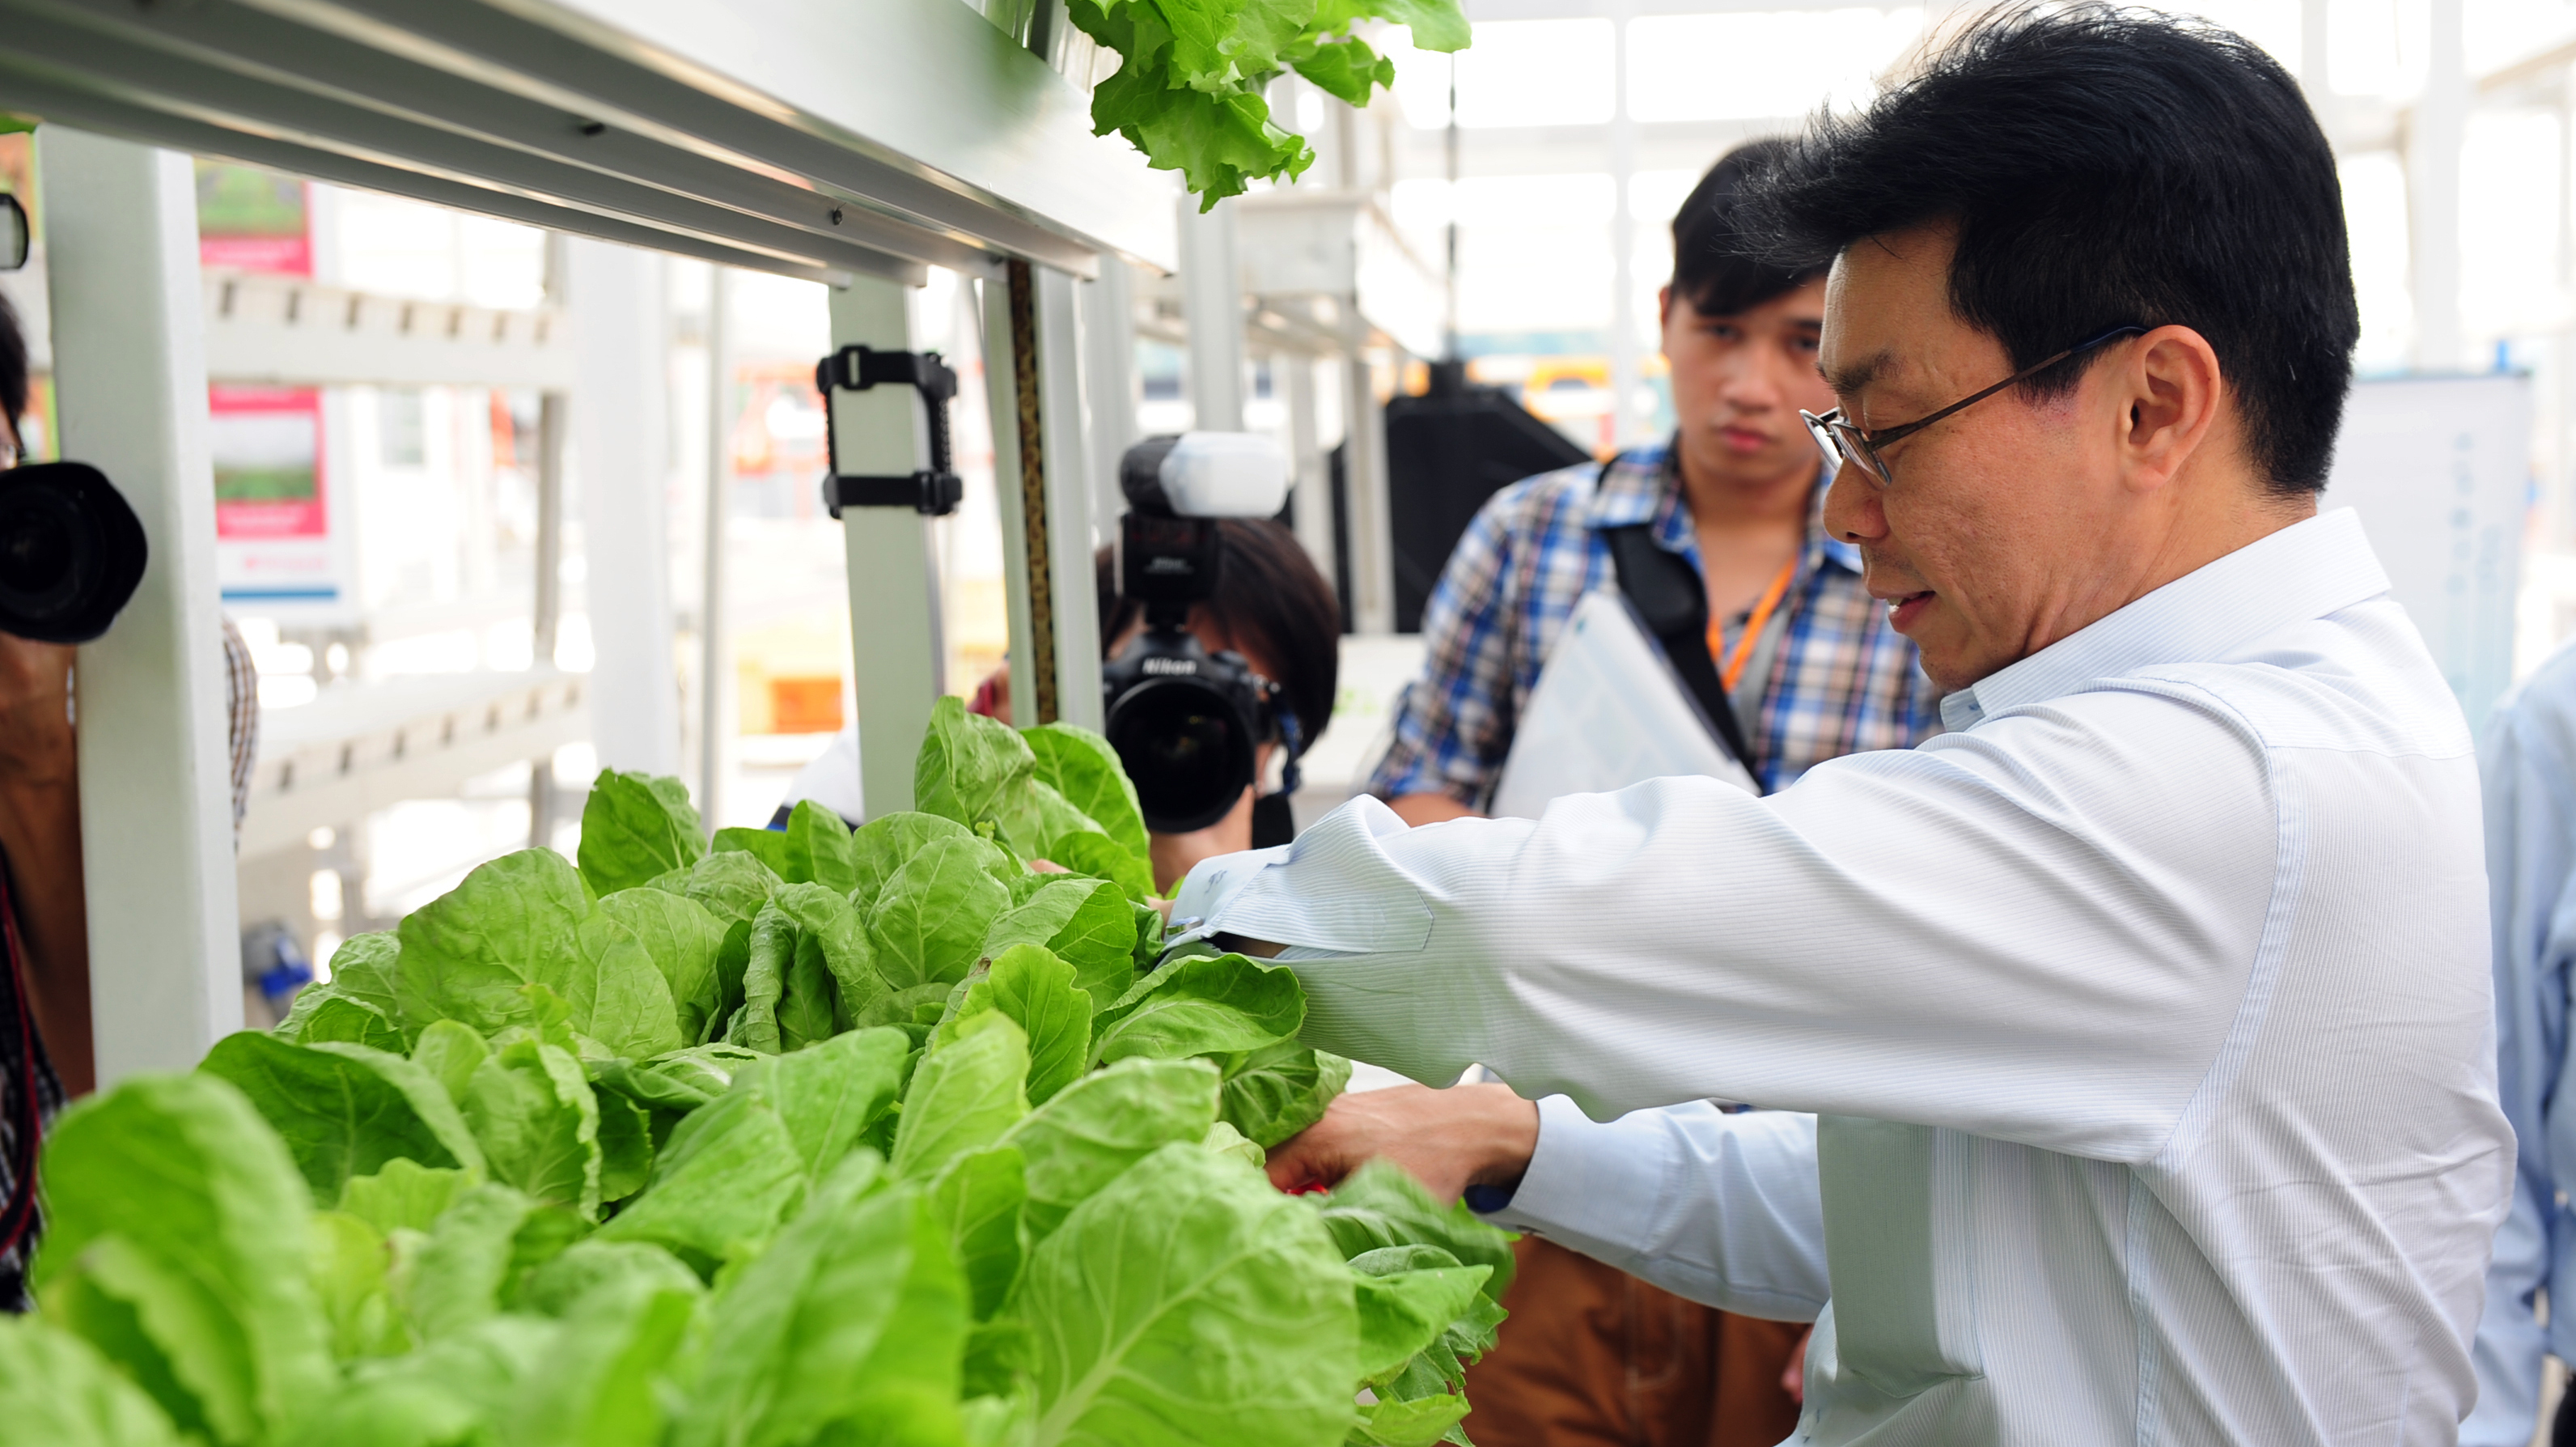 Senior Minister of State Lee Yi Shyan inspects the Chinese vegetables at Singapore's first commercial vertical farm.